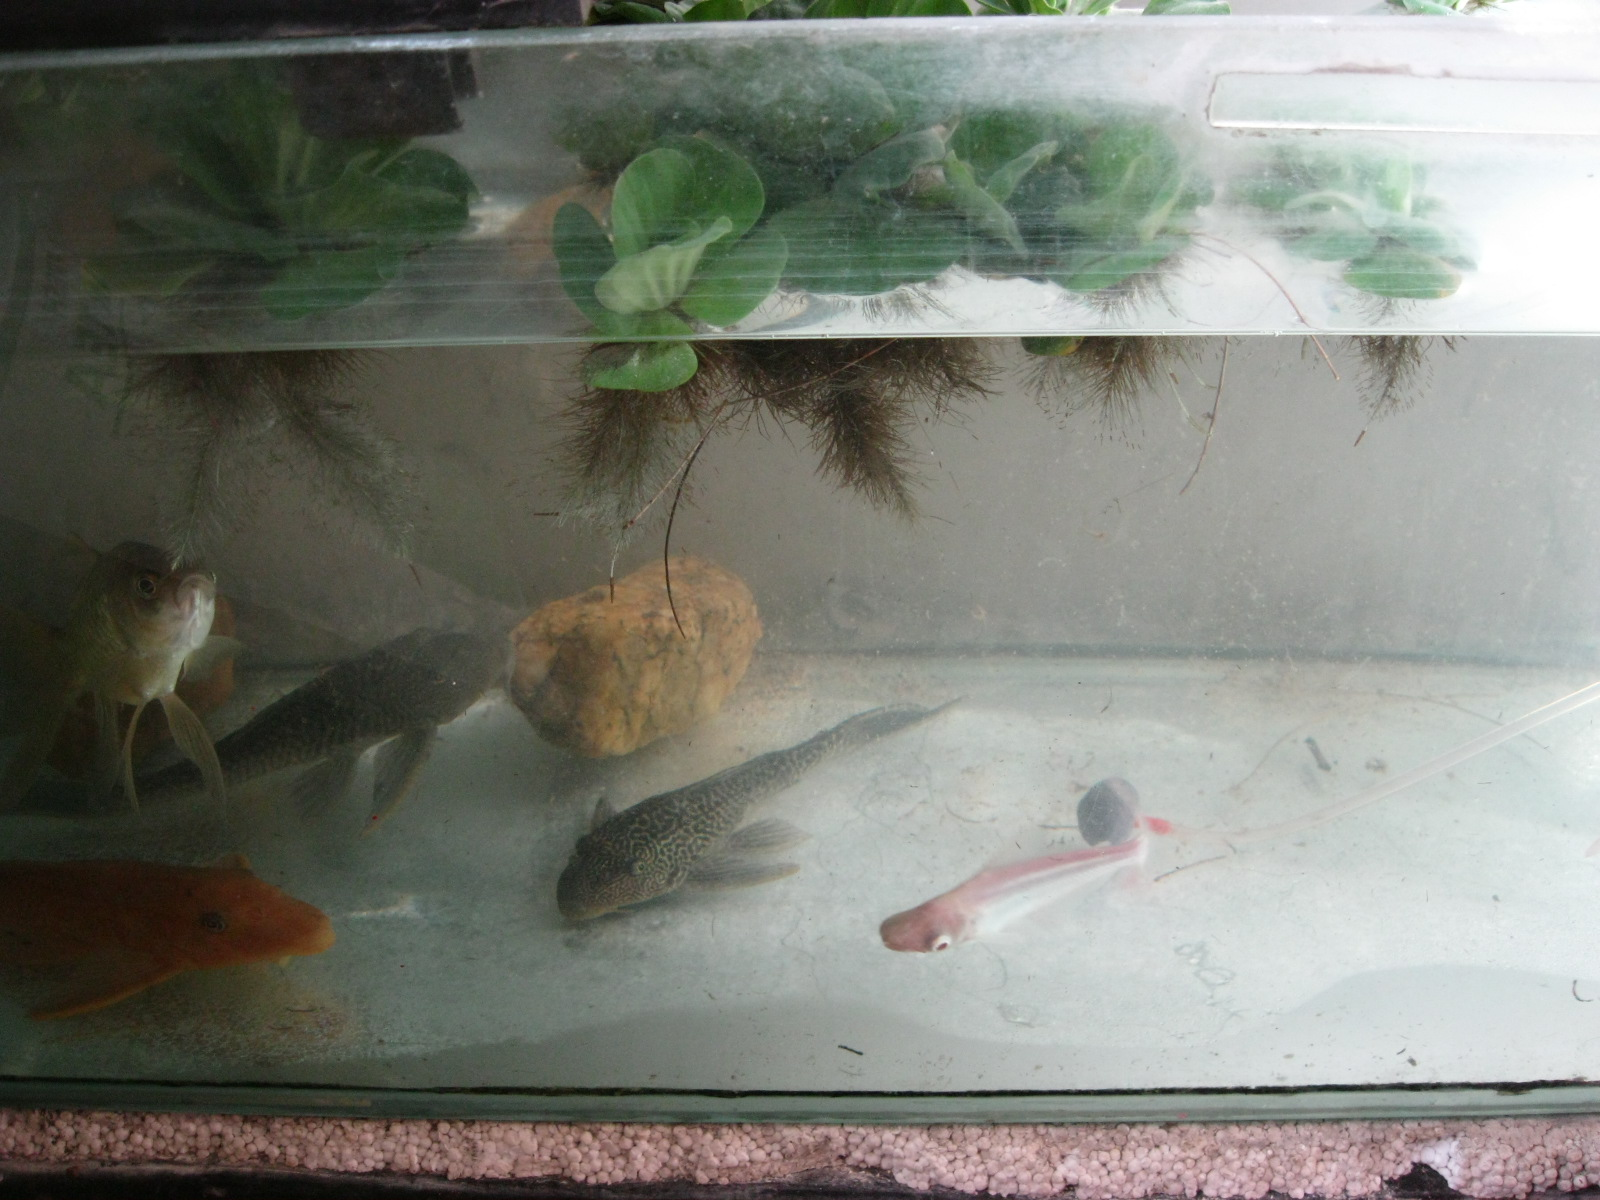 Experiments with aqua phonics mumbai fish tank cleaning for Fresh water tank cleaning fish